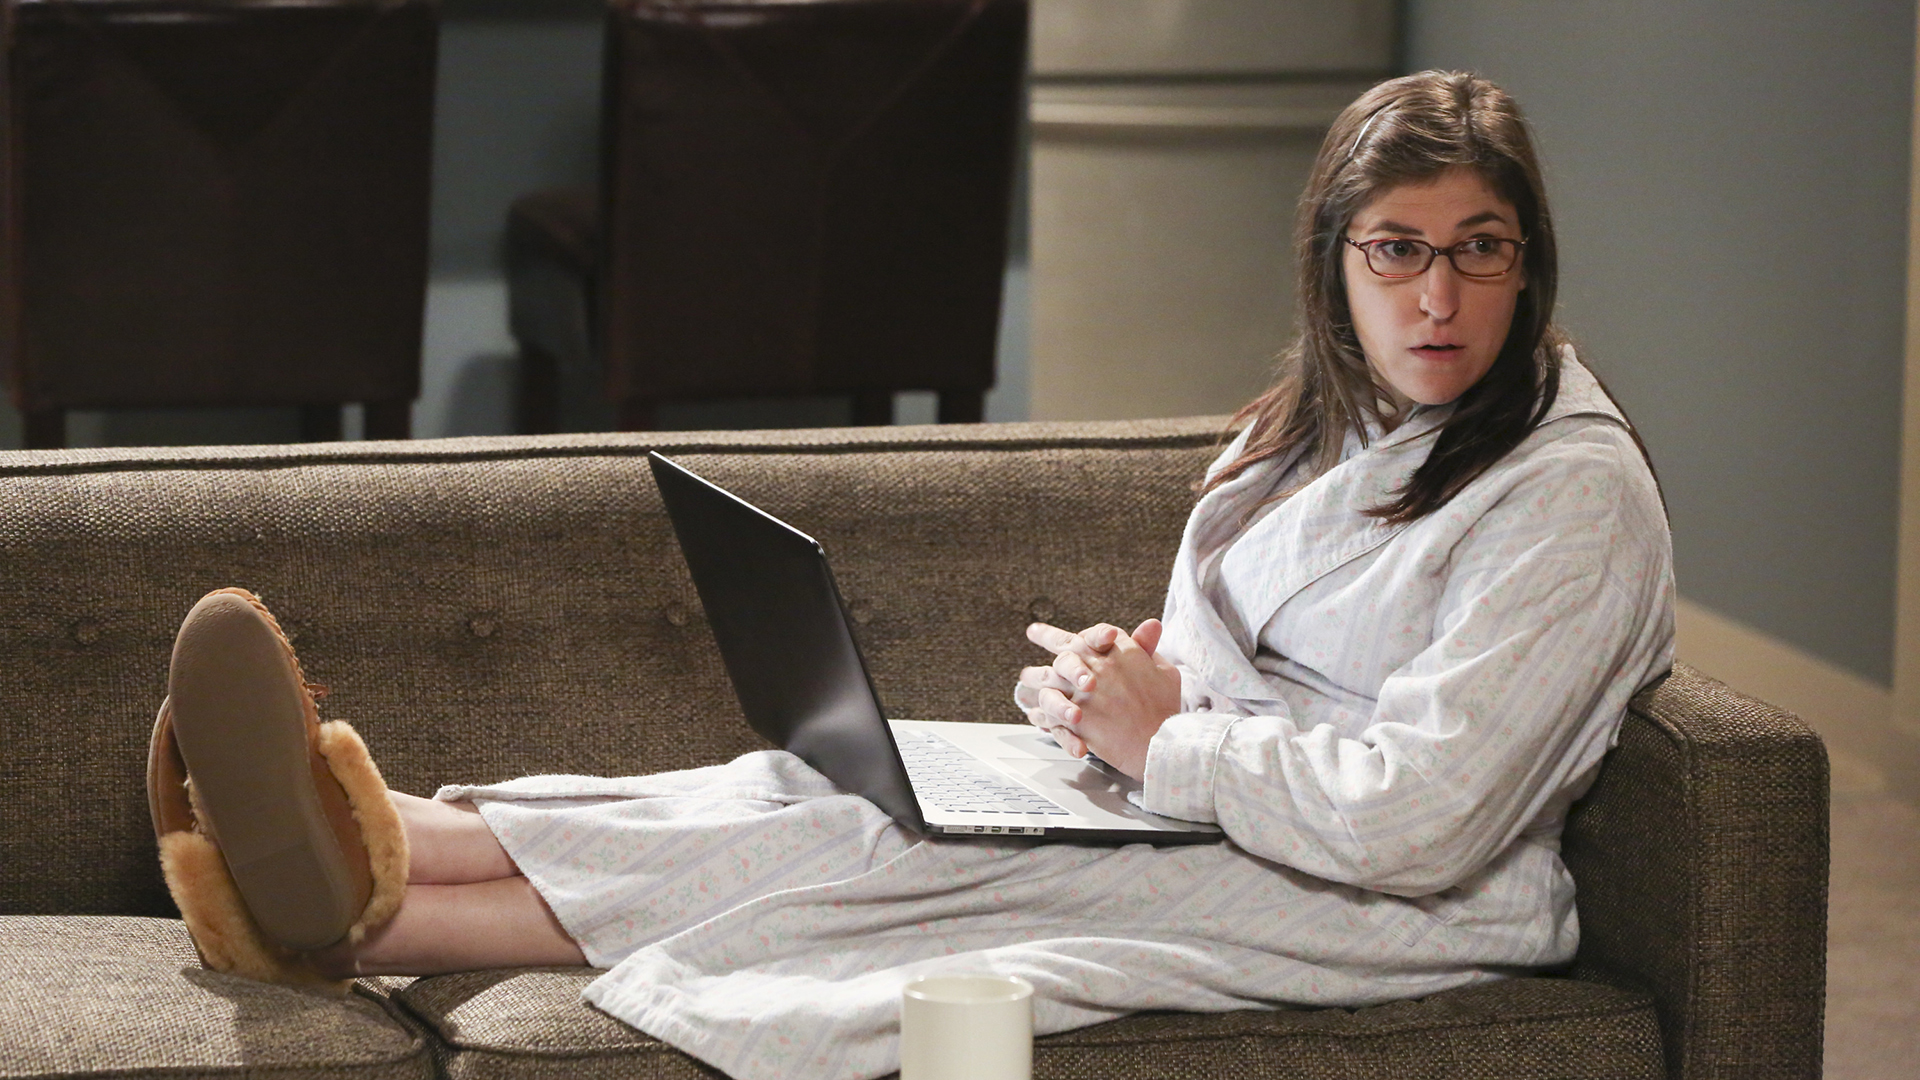 Mayim Bialik's first-ever email address in 1995 was